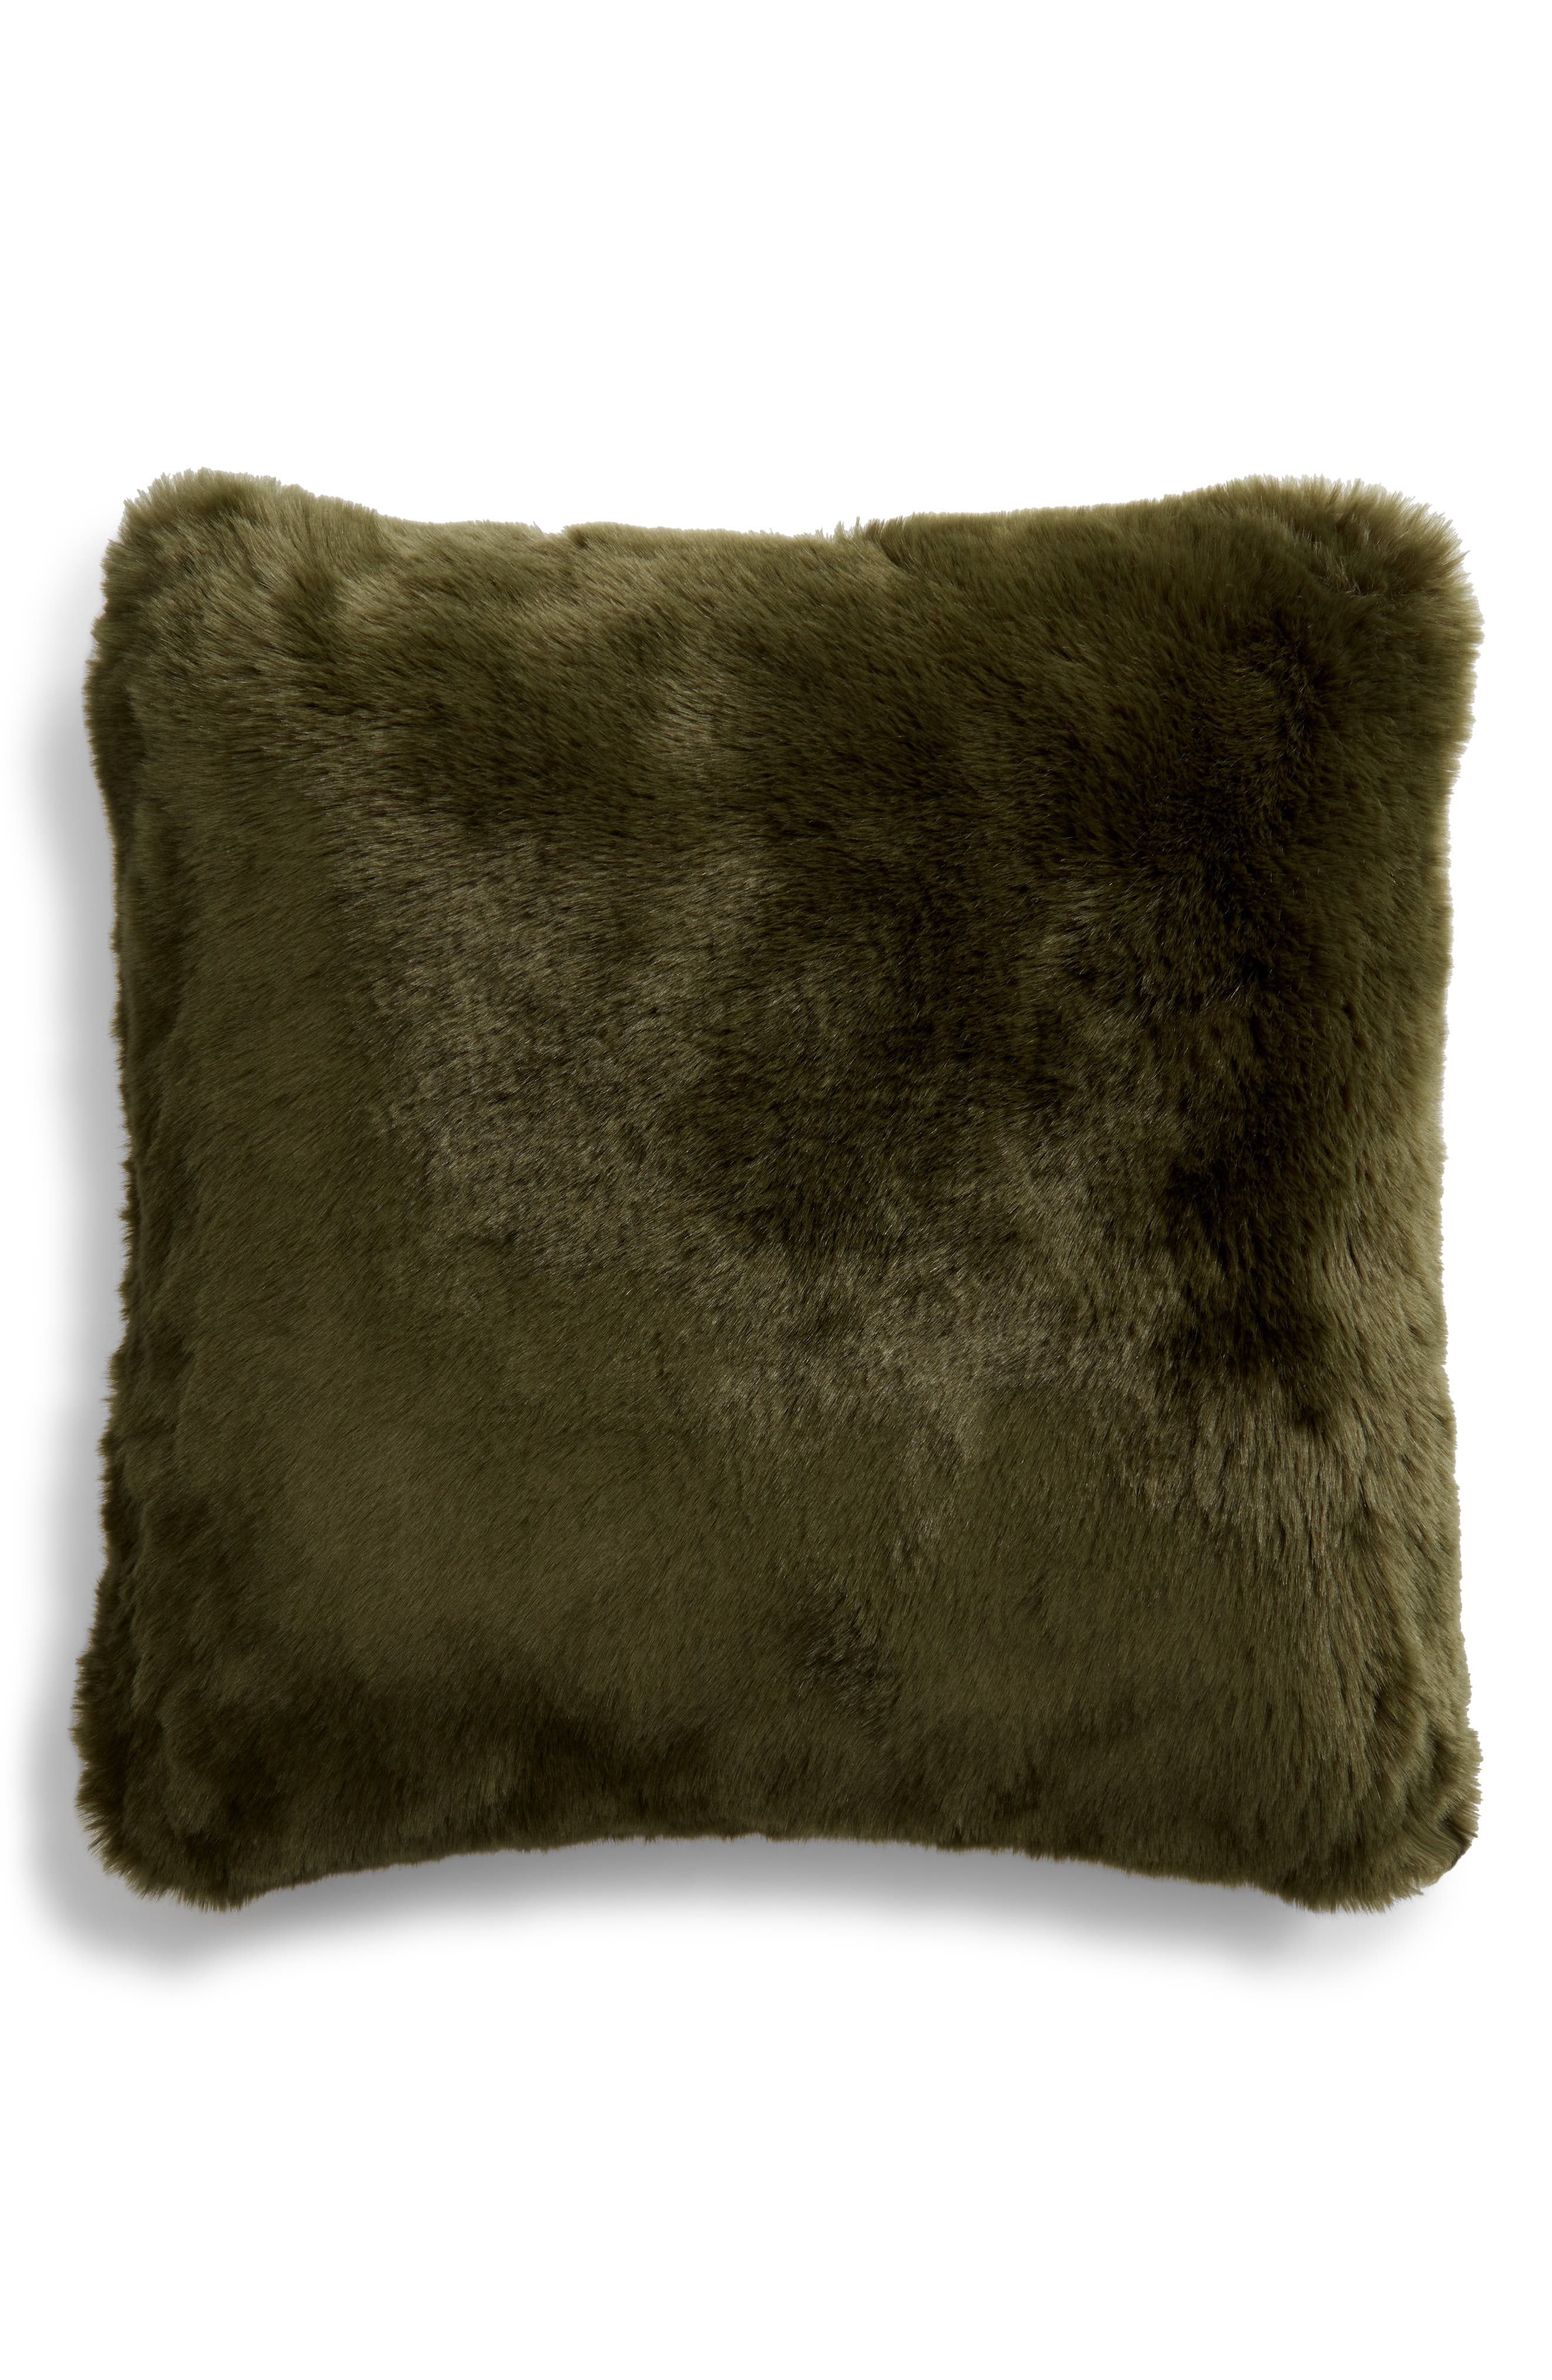 NORDSTROM AT HOME, Cuddle Up Faux Fur Pillow, Main thumbnail 1, color, GREEN CYPRESS